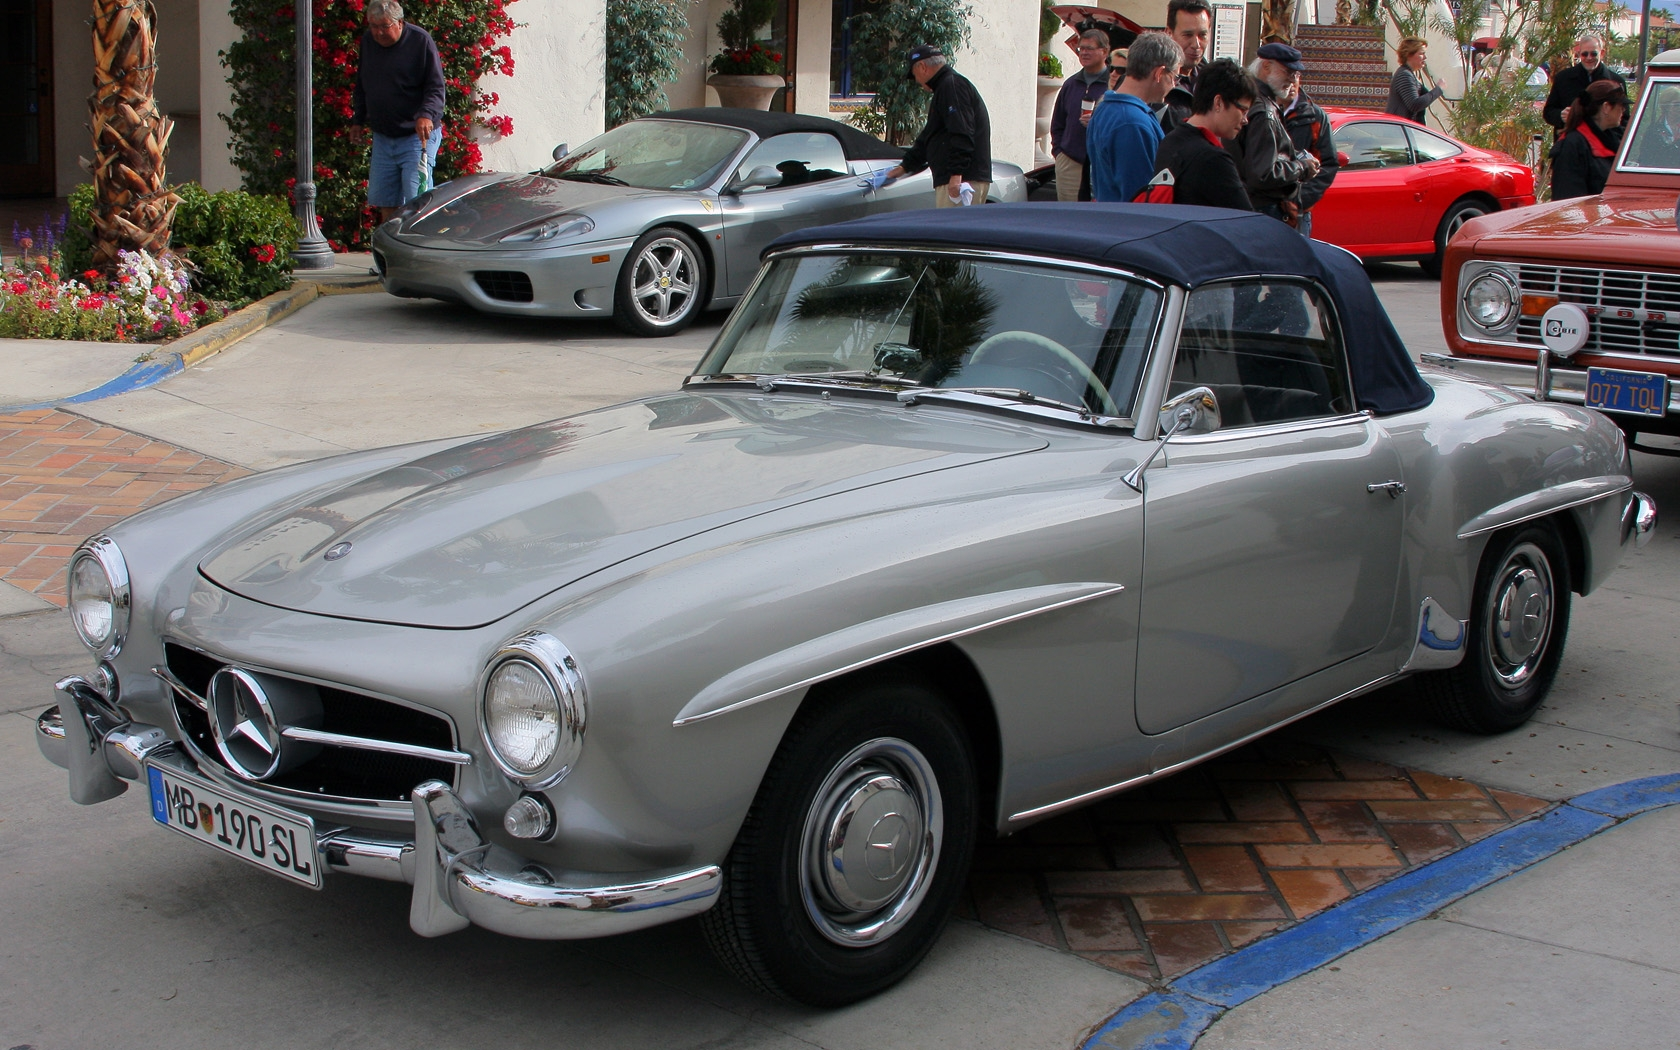 All Types 190 mercedes sl : File:1961 Mercedes Benz 190 SL - silver - fvl.jpg - Wikimedia Commons